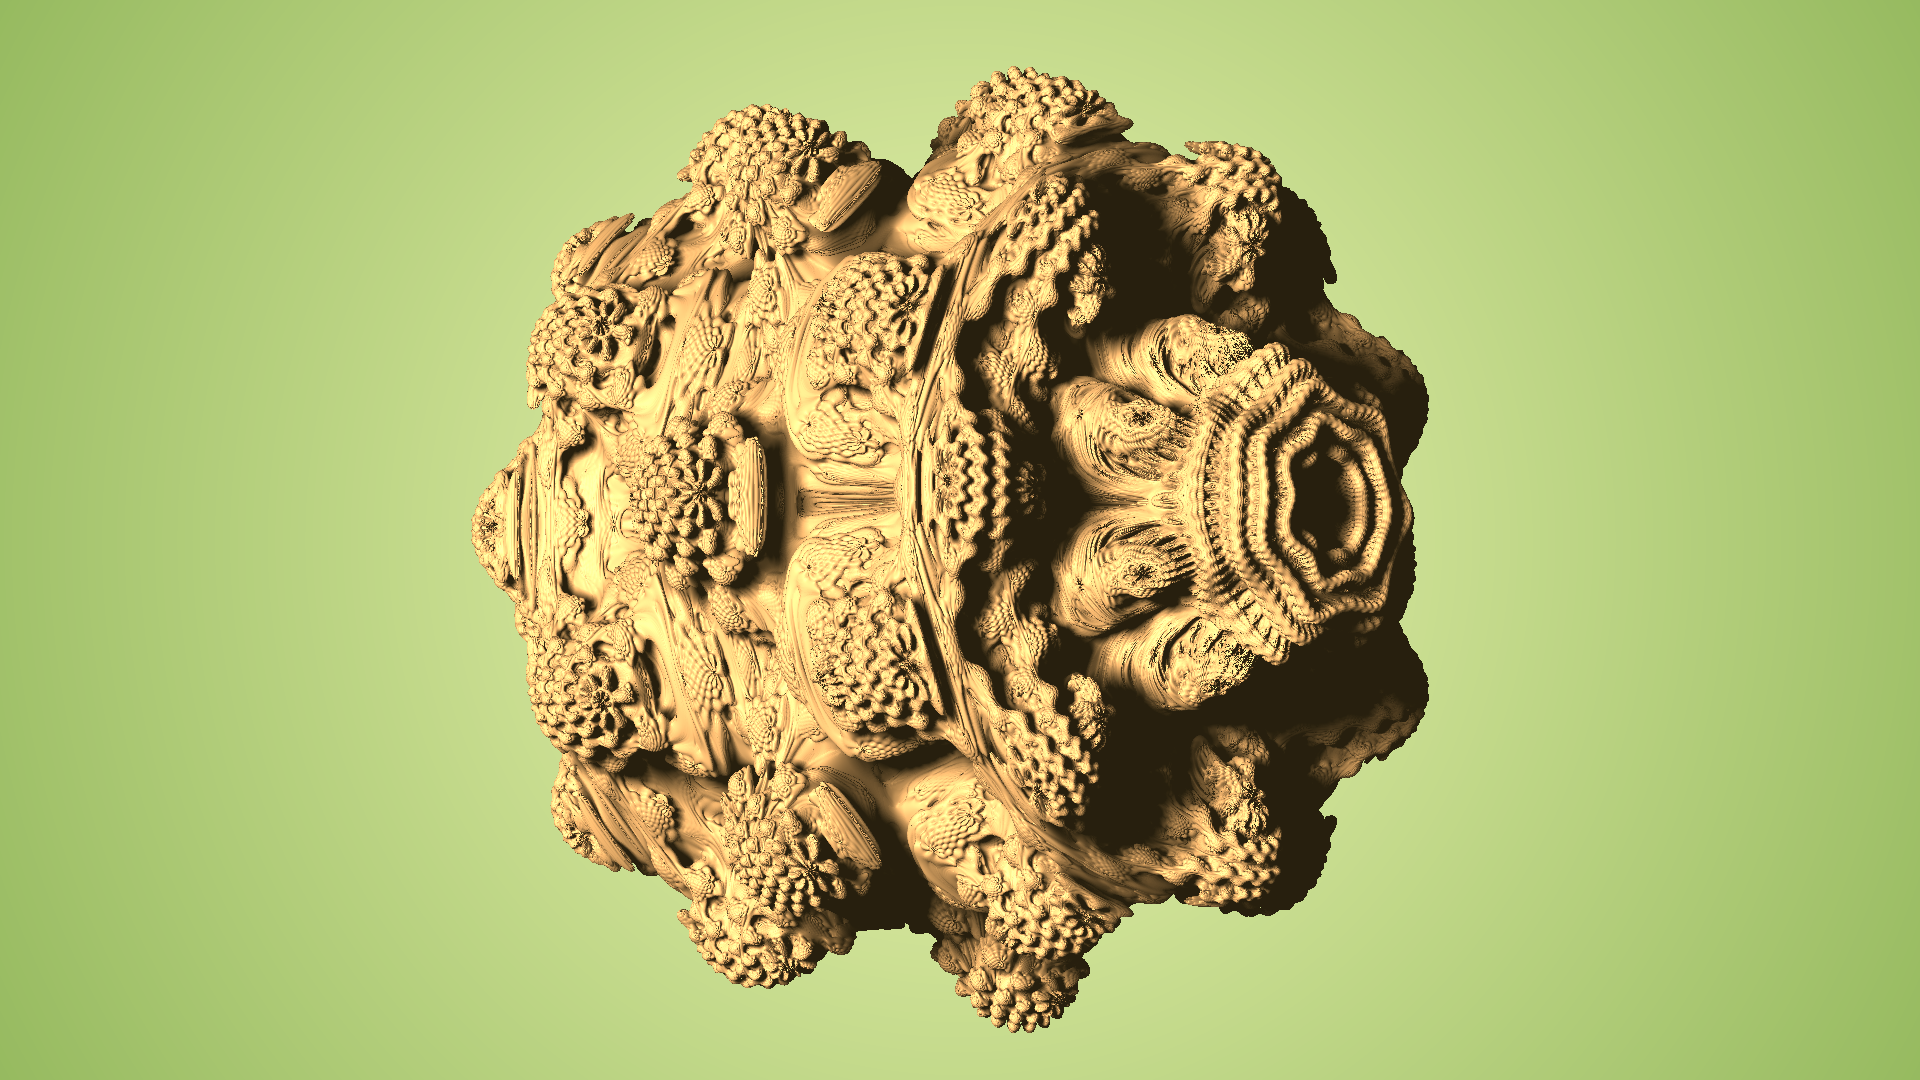 First Mandelbulb render, full of programming bugs